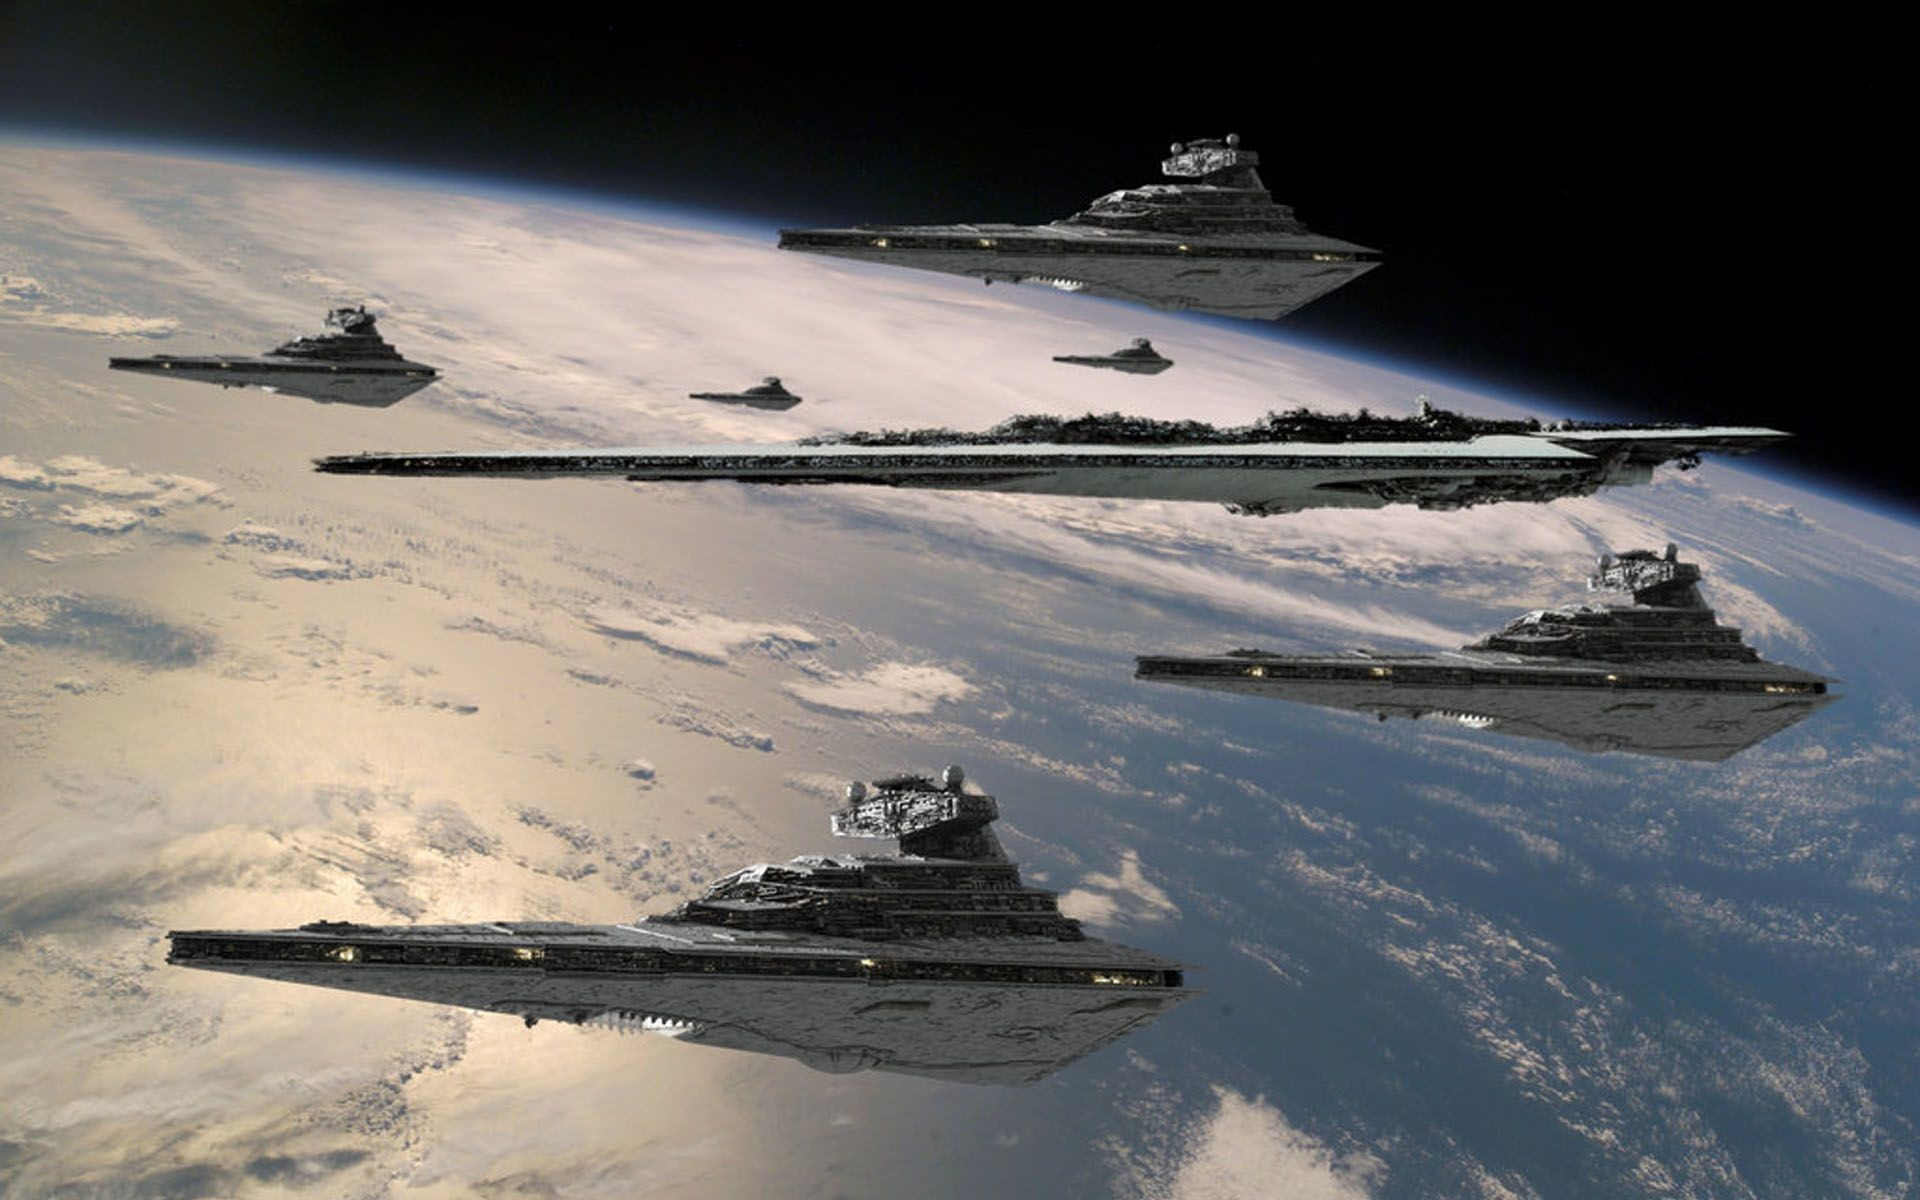 Imperial Star Destroyer Fleet with The Executor Super Star Destroyer over  planet